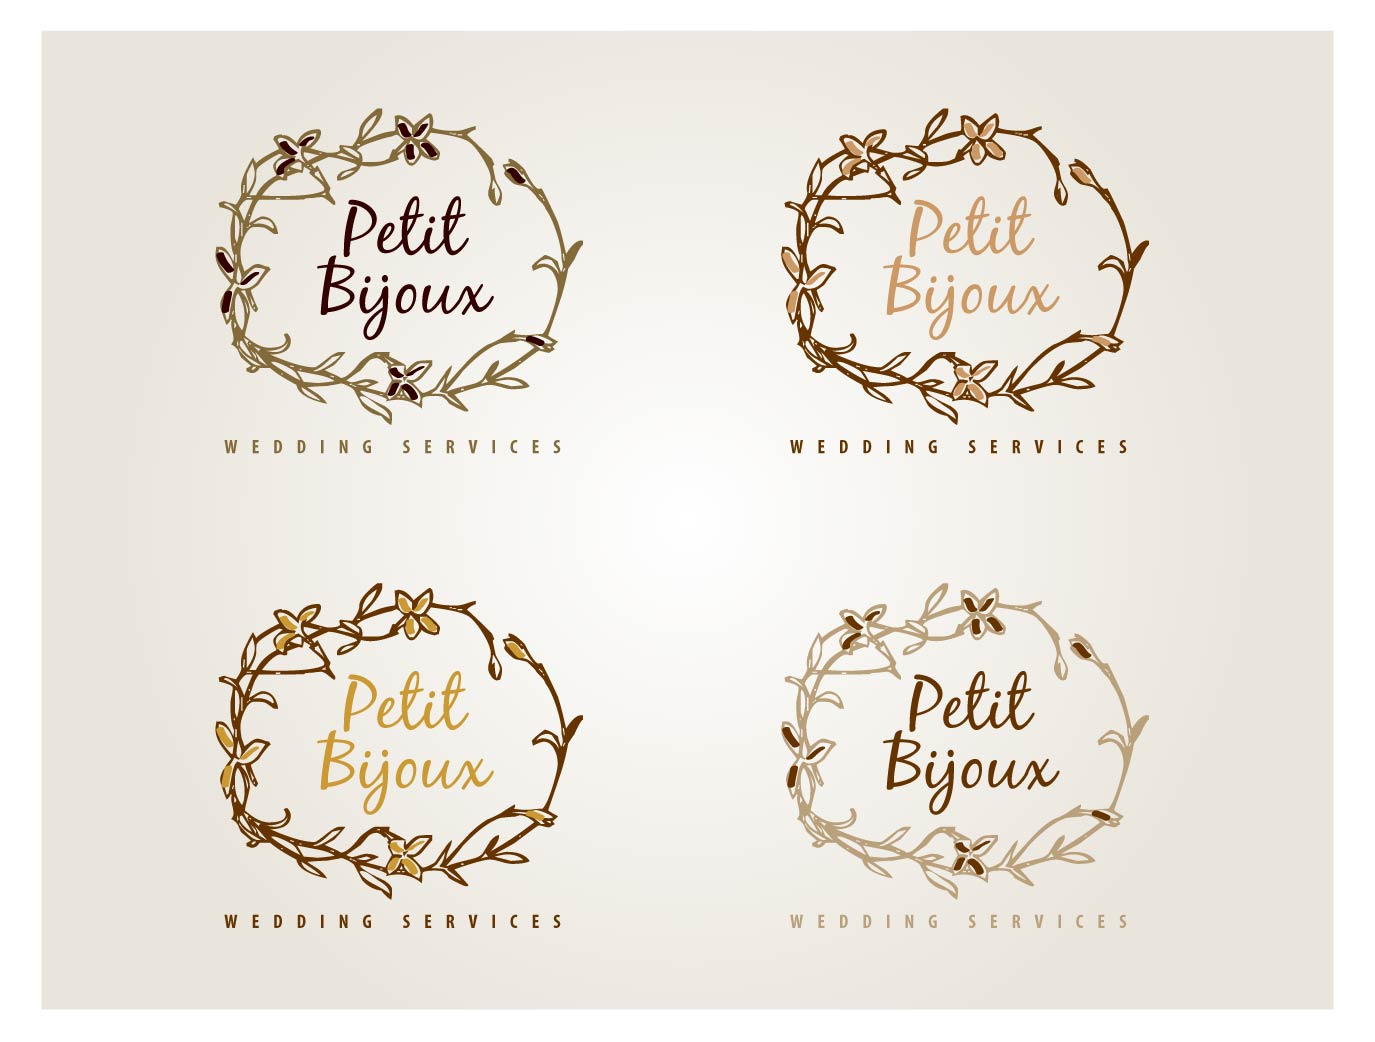 Decoration company names wedding tips and inspiration wedding decoration company names images dress junglespirit Images